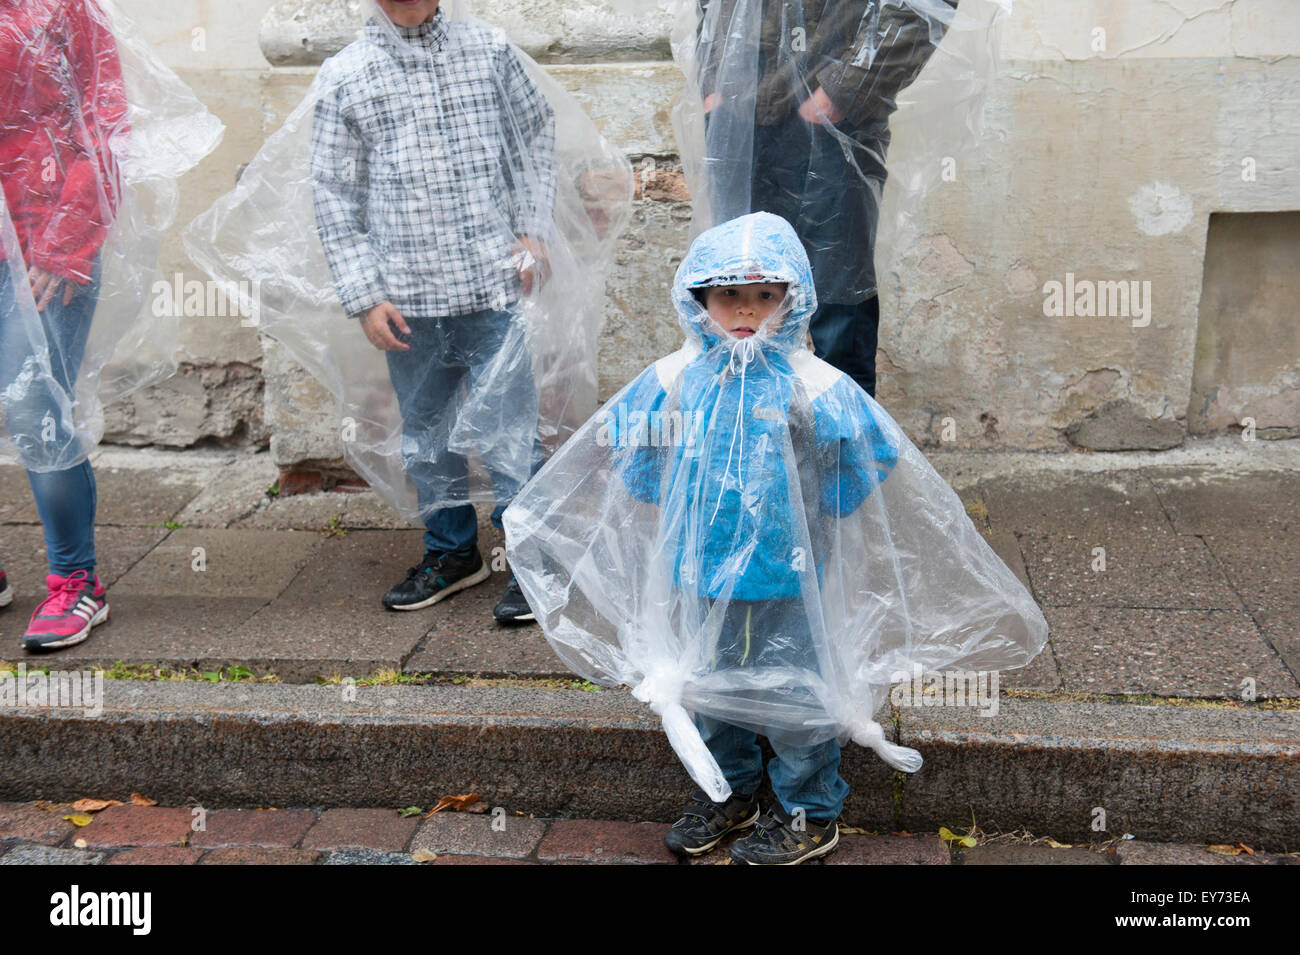 A rainy day in Tallinn, Estonia's Old Town, with ponchos for sale in the souvenir shops. - Stock Image